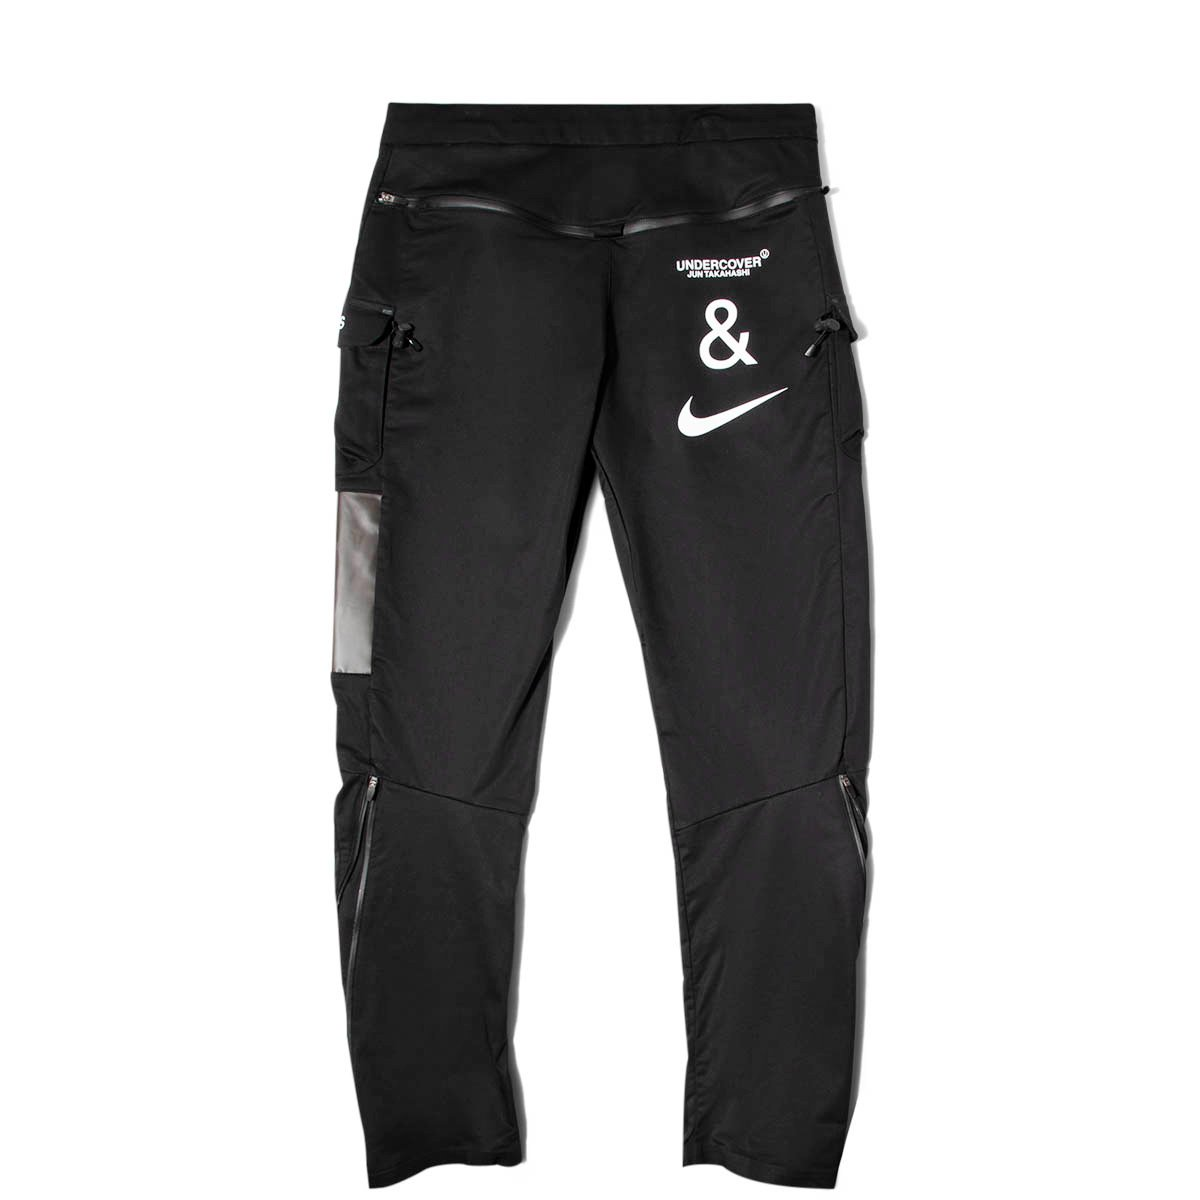 undercover x nike pants